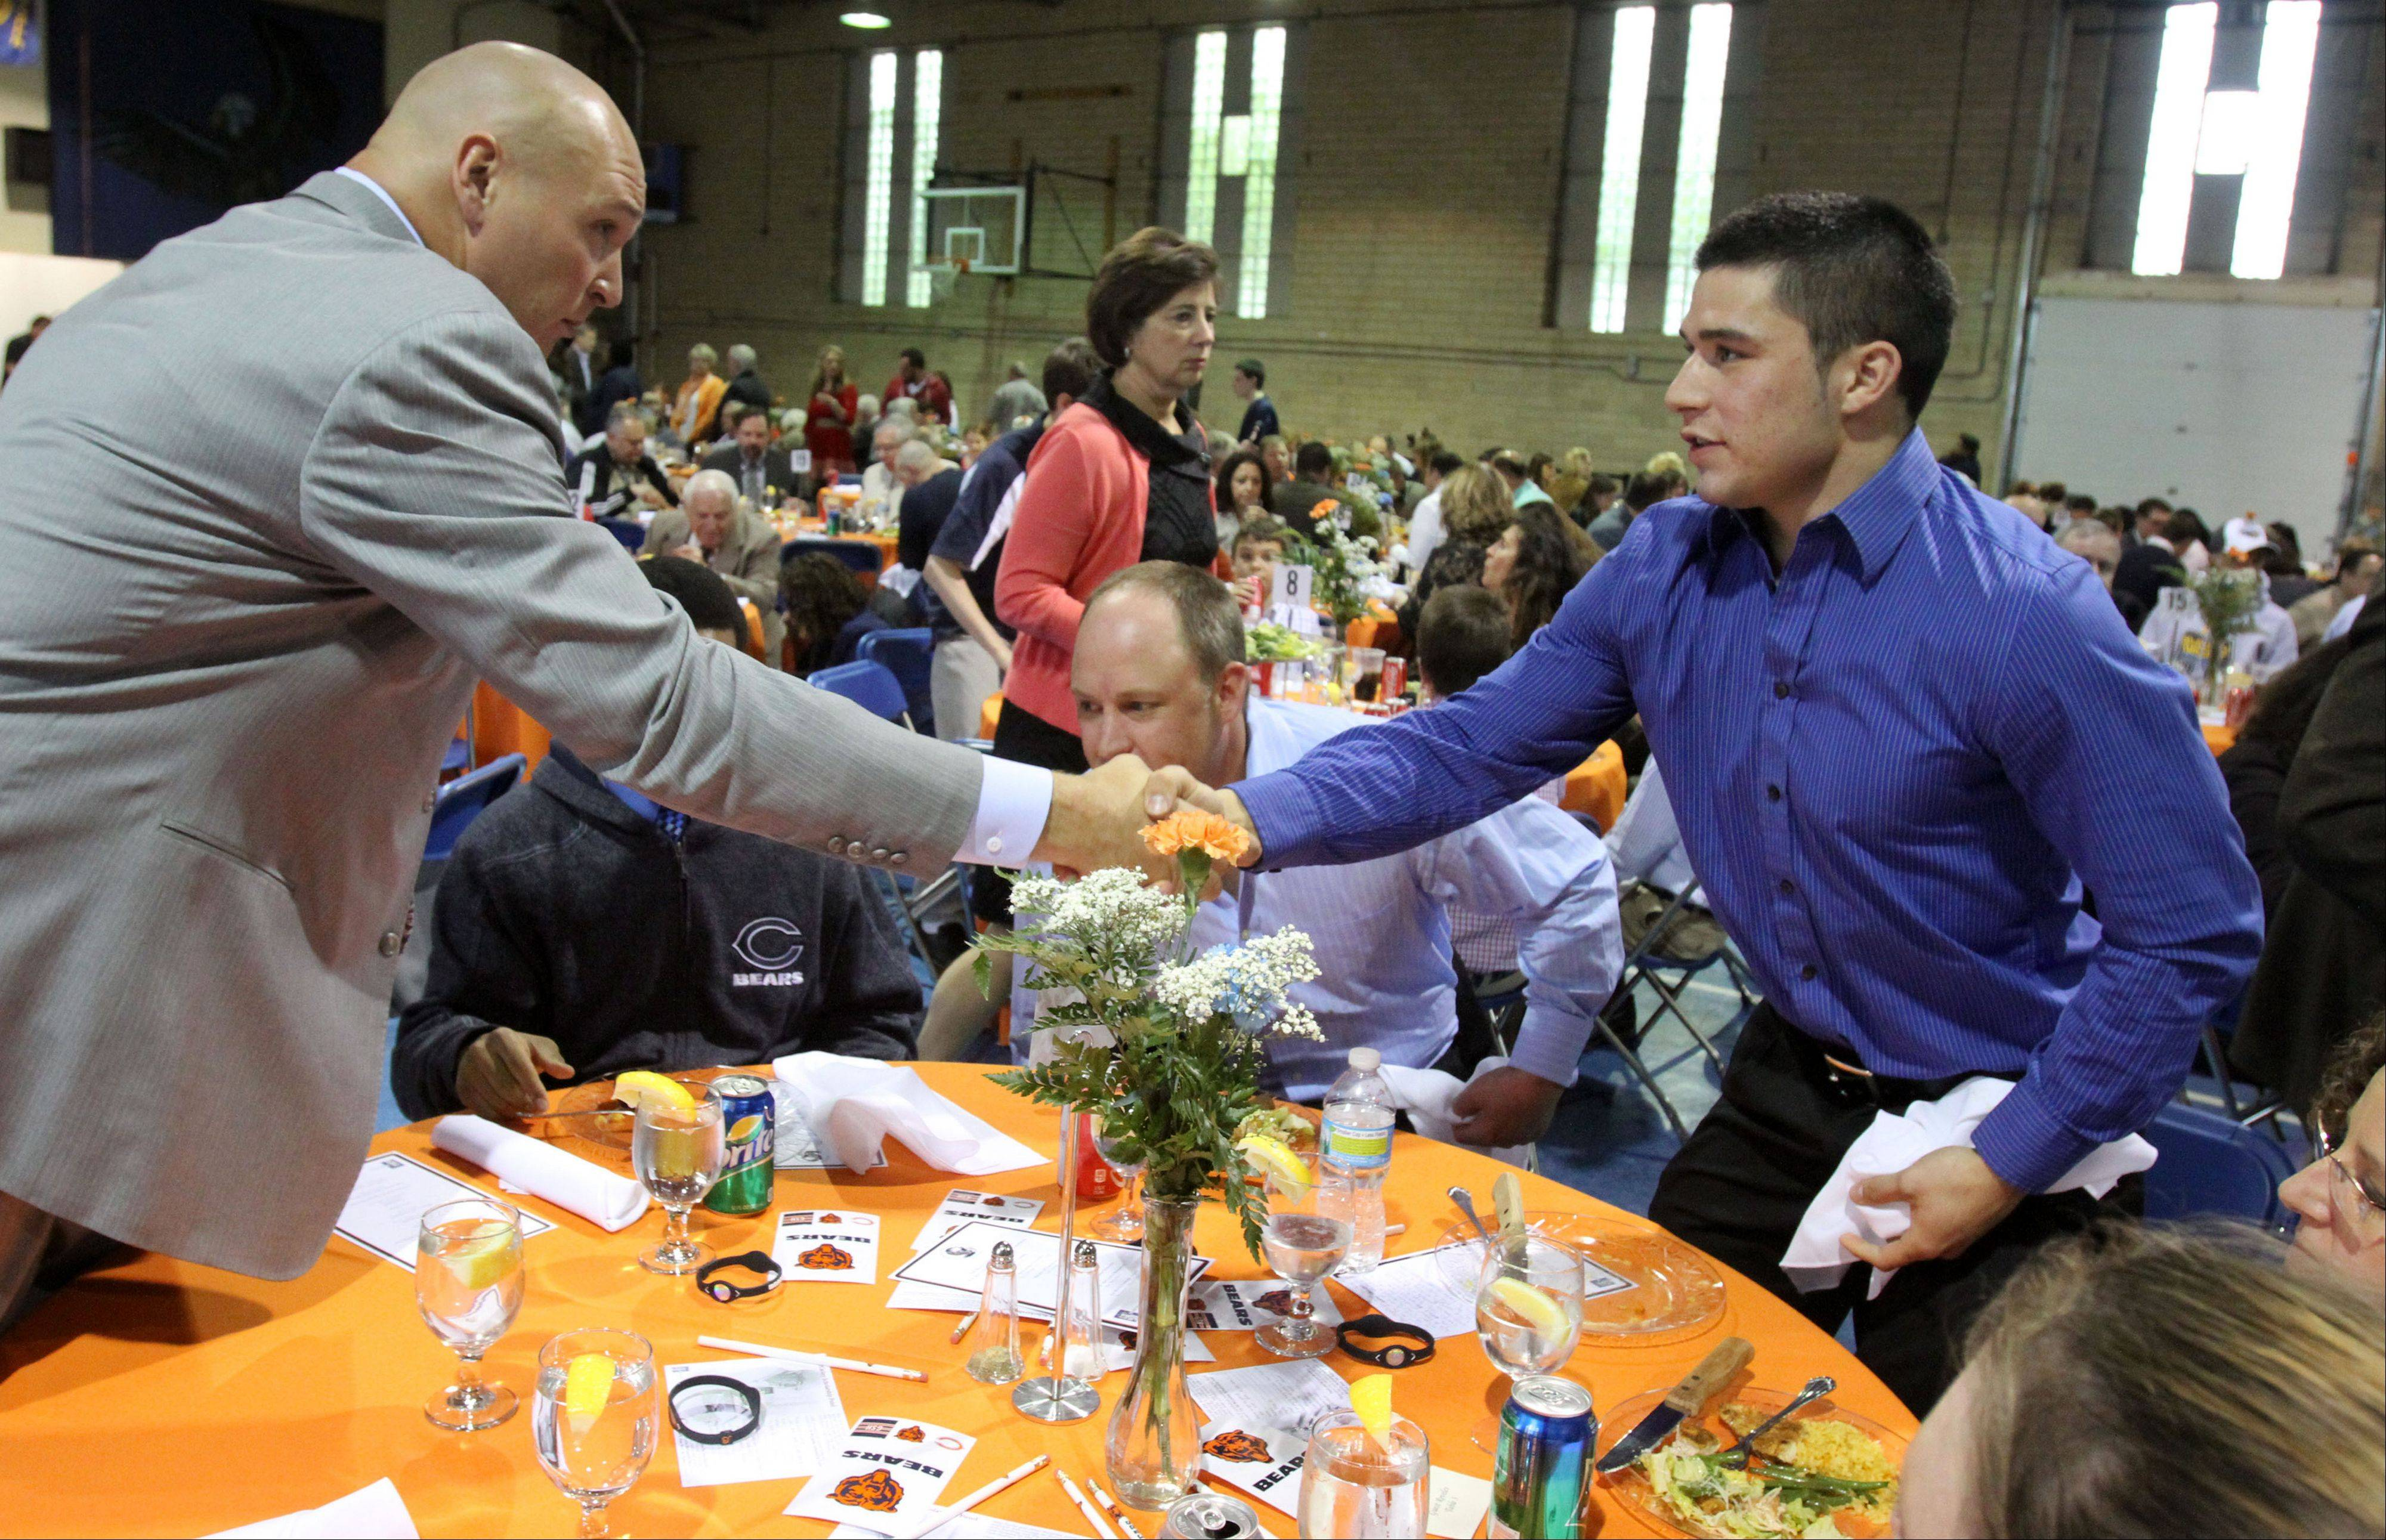 David Reveles of Naperville, a Maryville alumnus, received a Maryville scholarship and a handshake from Brian Urlacher.